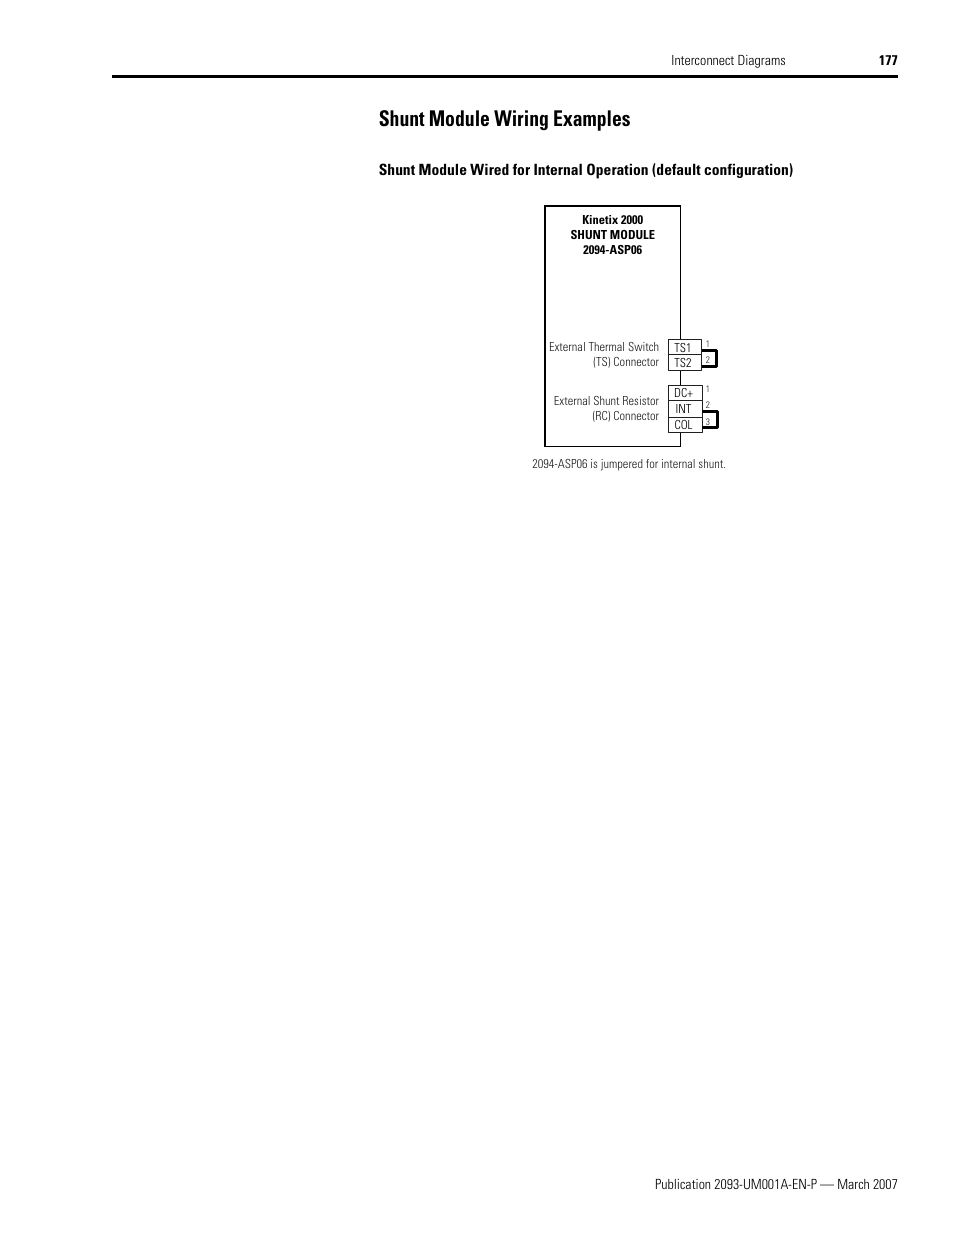 hight resolution of shunt module wiring examples rockwell automation 2093 xxxx kinetix 2000 multi axis servo drive user manual user manual page 177 226